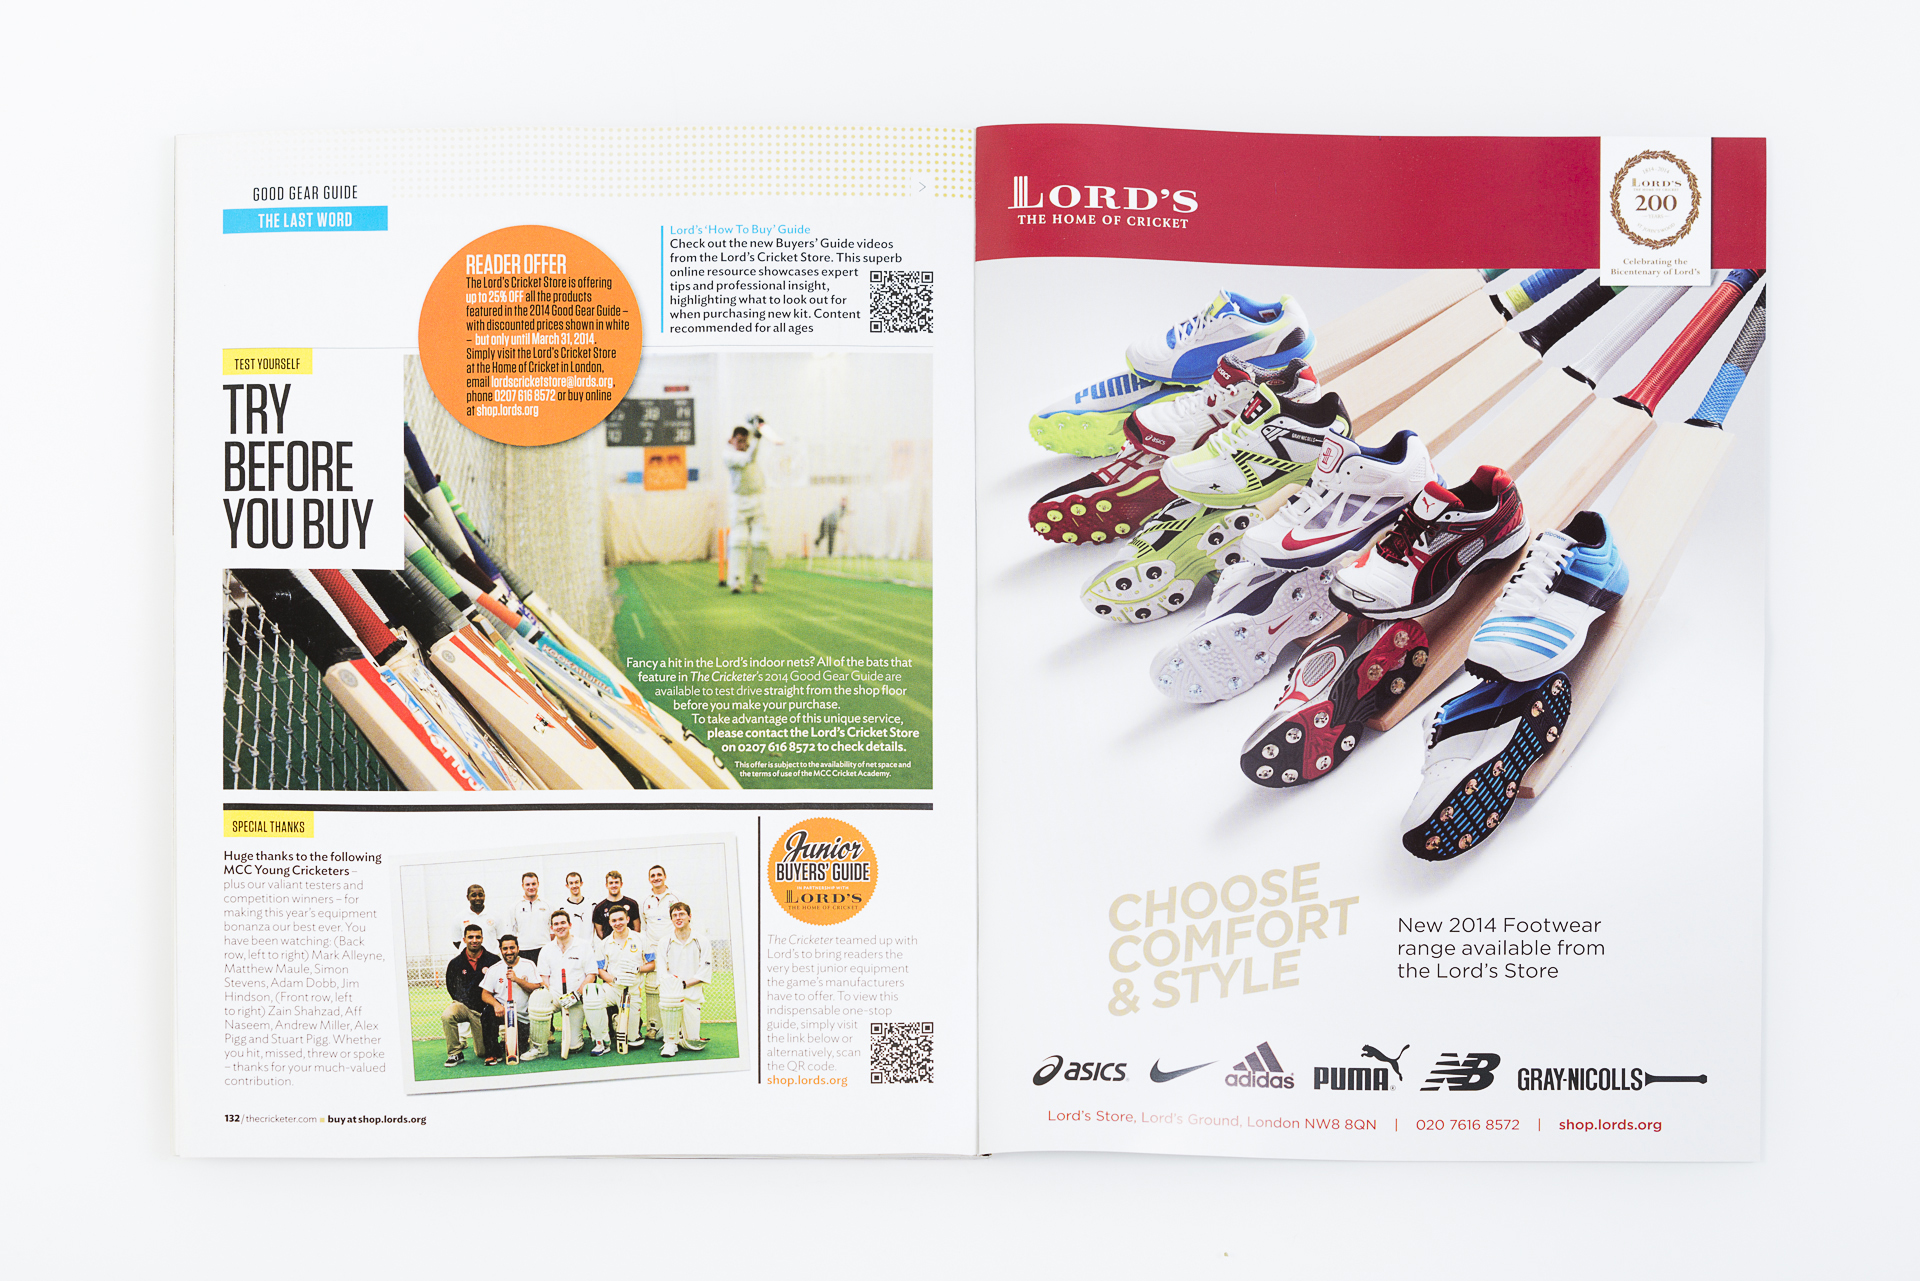 The Cricketer Magazine Good Gear Guide 2014 review. All photography courtesy Paul Carroll / Portrait Collective.